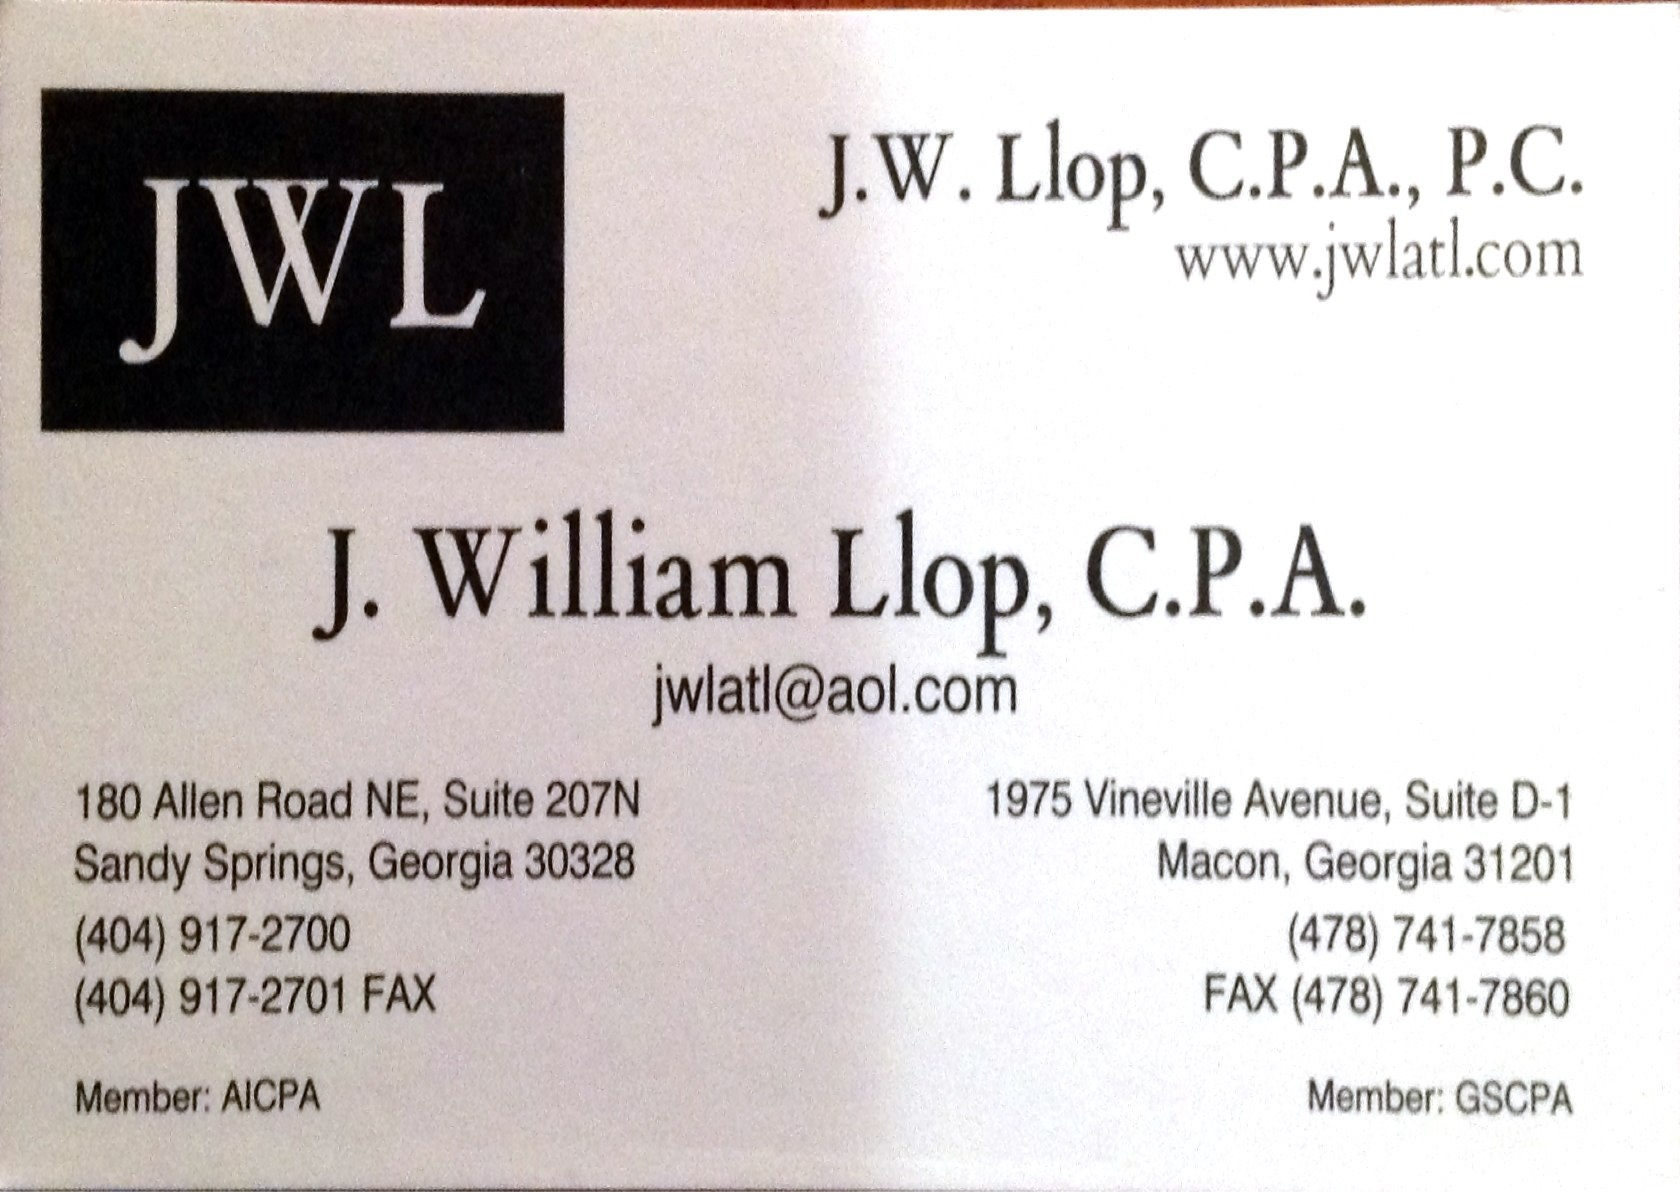 J. William Llop, C.P.A.